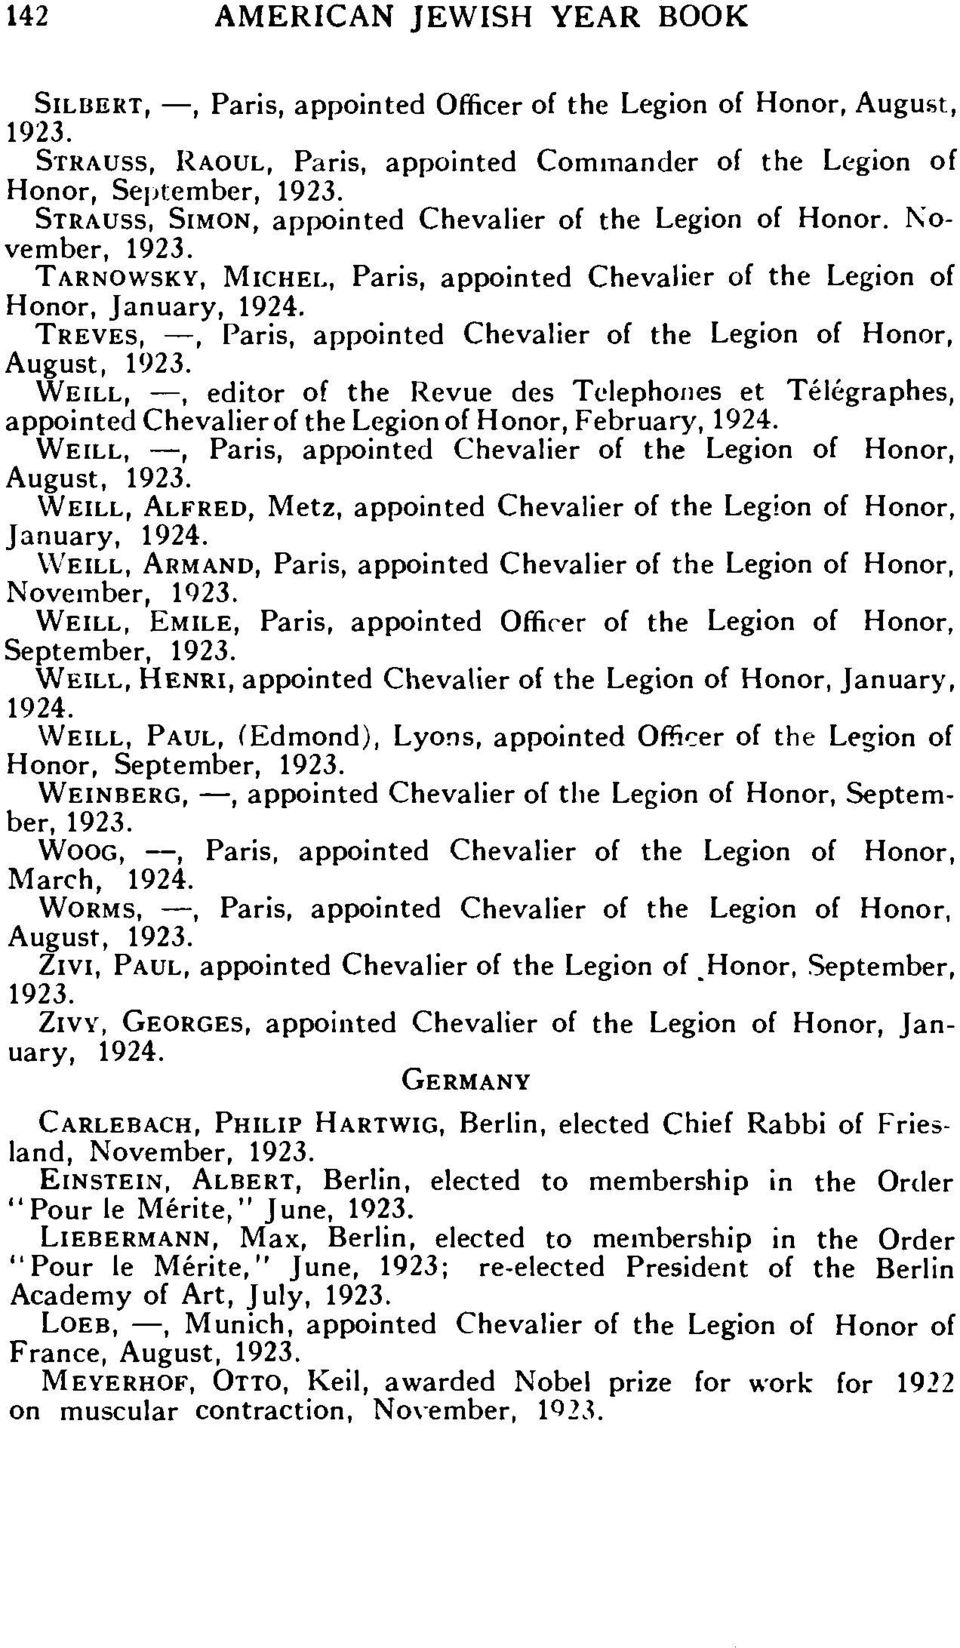 TREVES,, Paris, appointed Chevalier of the Legion of Honor, August, WEILL,, editor of the Revue des Telephones et Telegraphes, appointed Chevalier of the Legion of Honor, February, 1924.